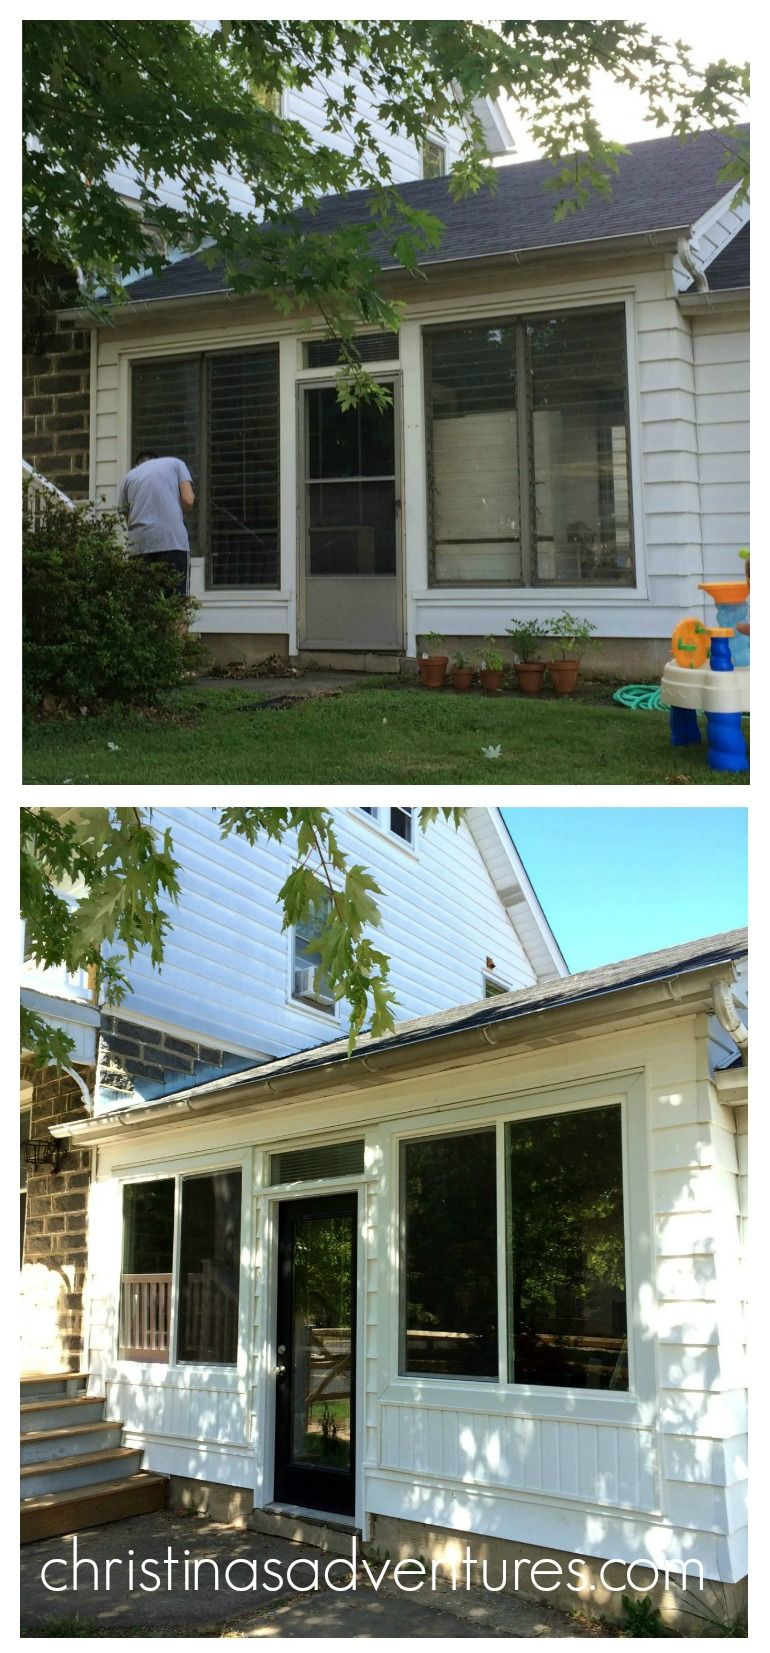 jalousie window replacement louvered windows smart way to replace old jalousie windows this house is full of great fixer upper ideas